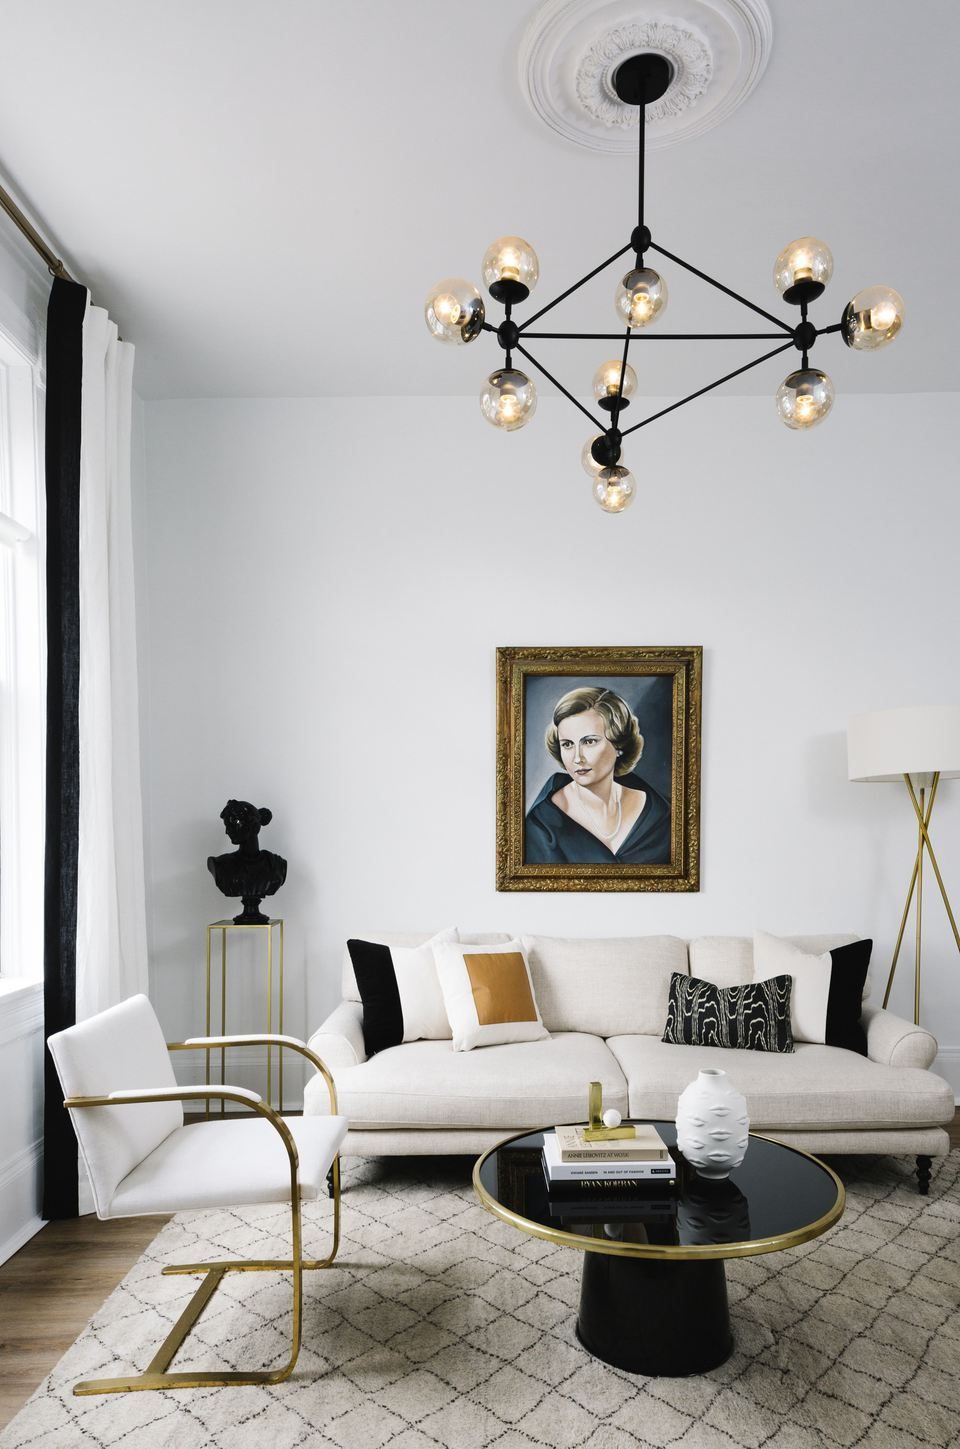 This Is How To Decorate Your Home S Interior In Elegant Black And White Luxe Living Room Room Interior Living Room Designs